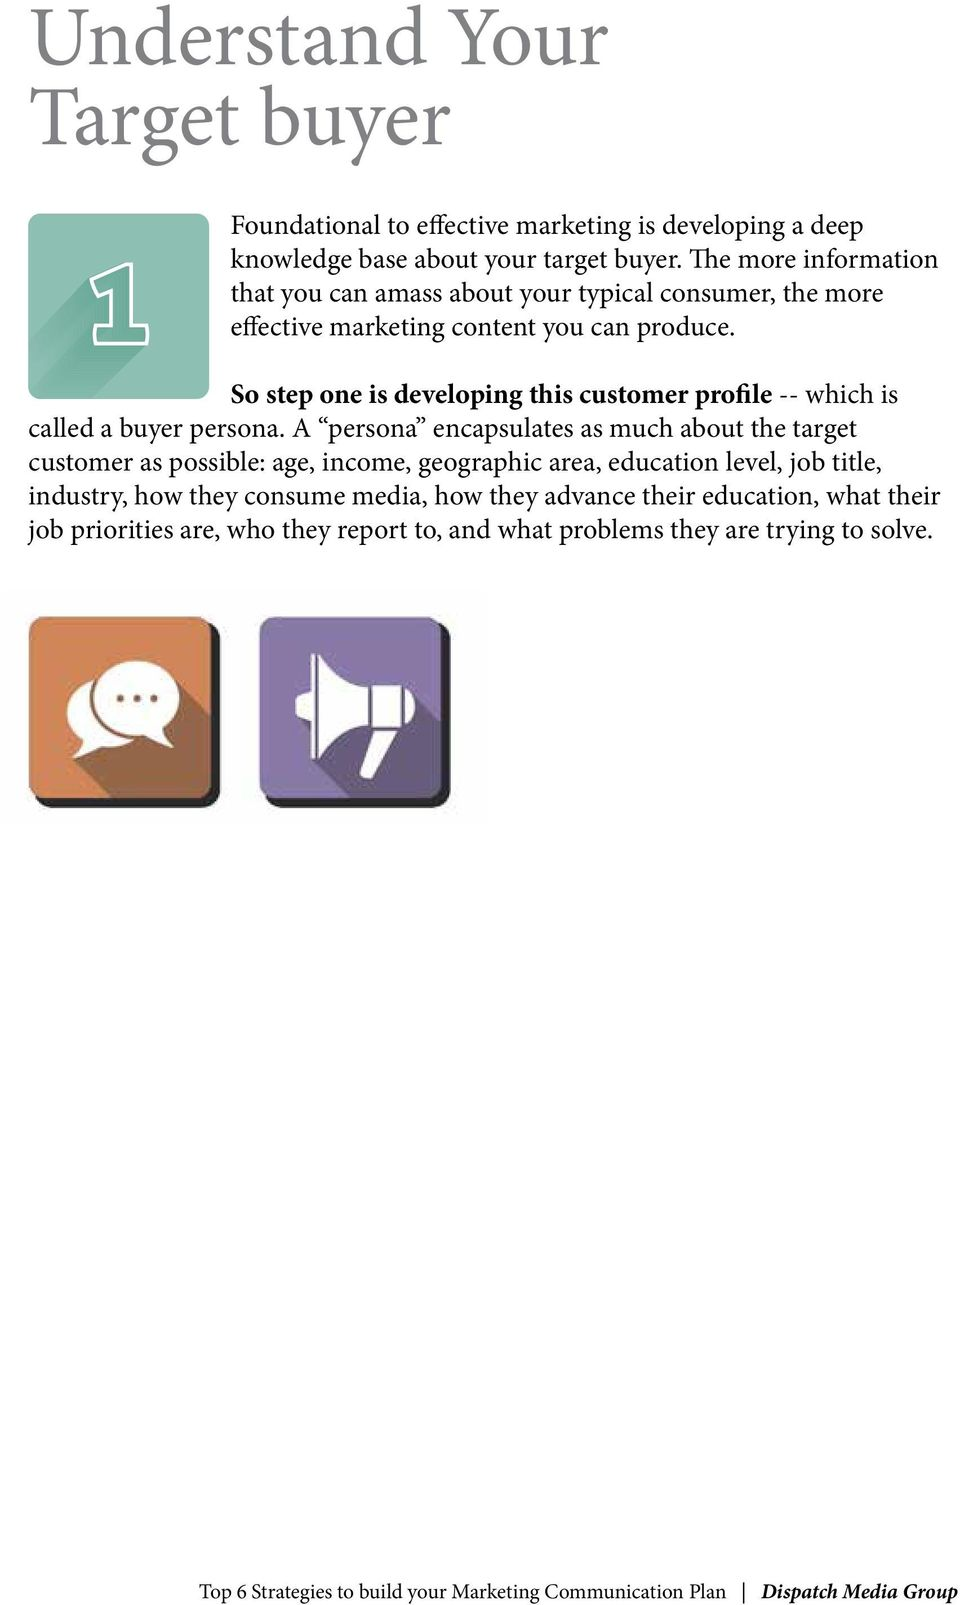 So step one is developing this customer profile -- which is called a buyer persona.